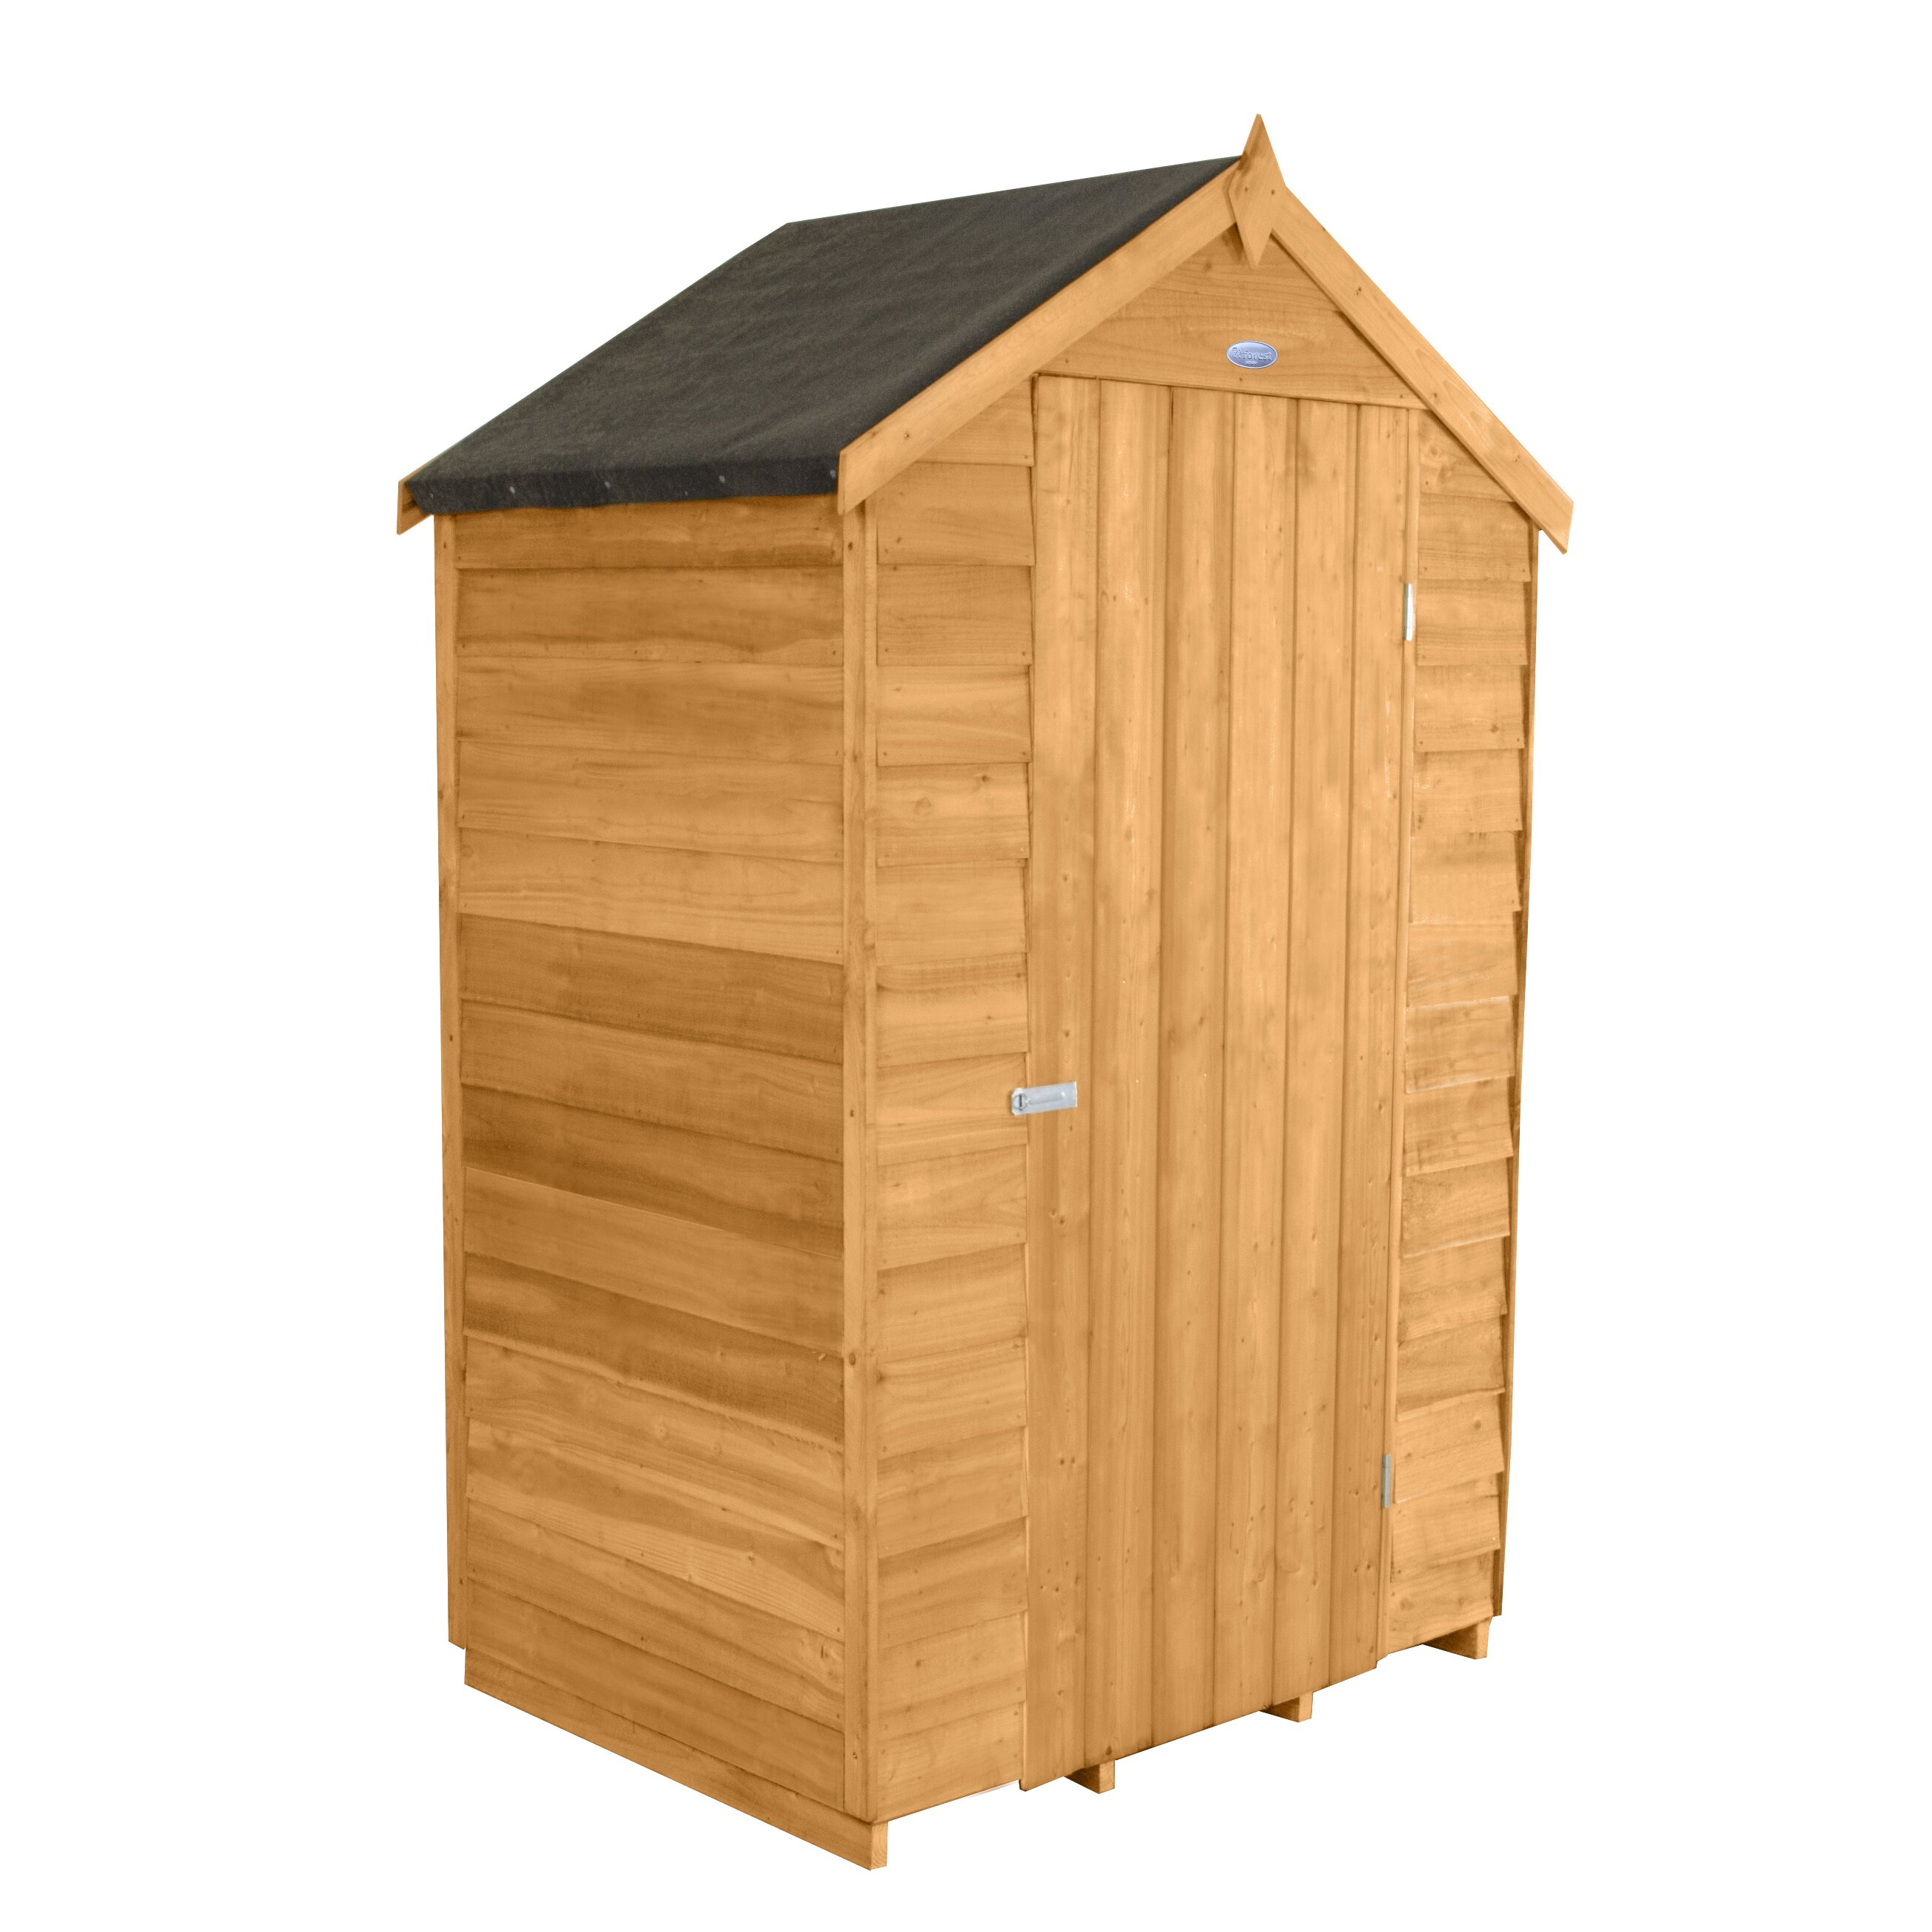 Forest garden 4 x 3 wooden storage shed wayfair uk for Wooden garden storage shed